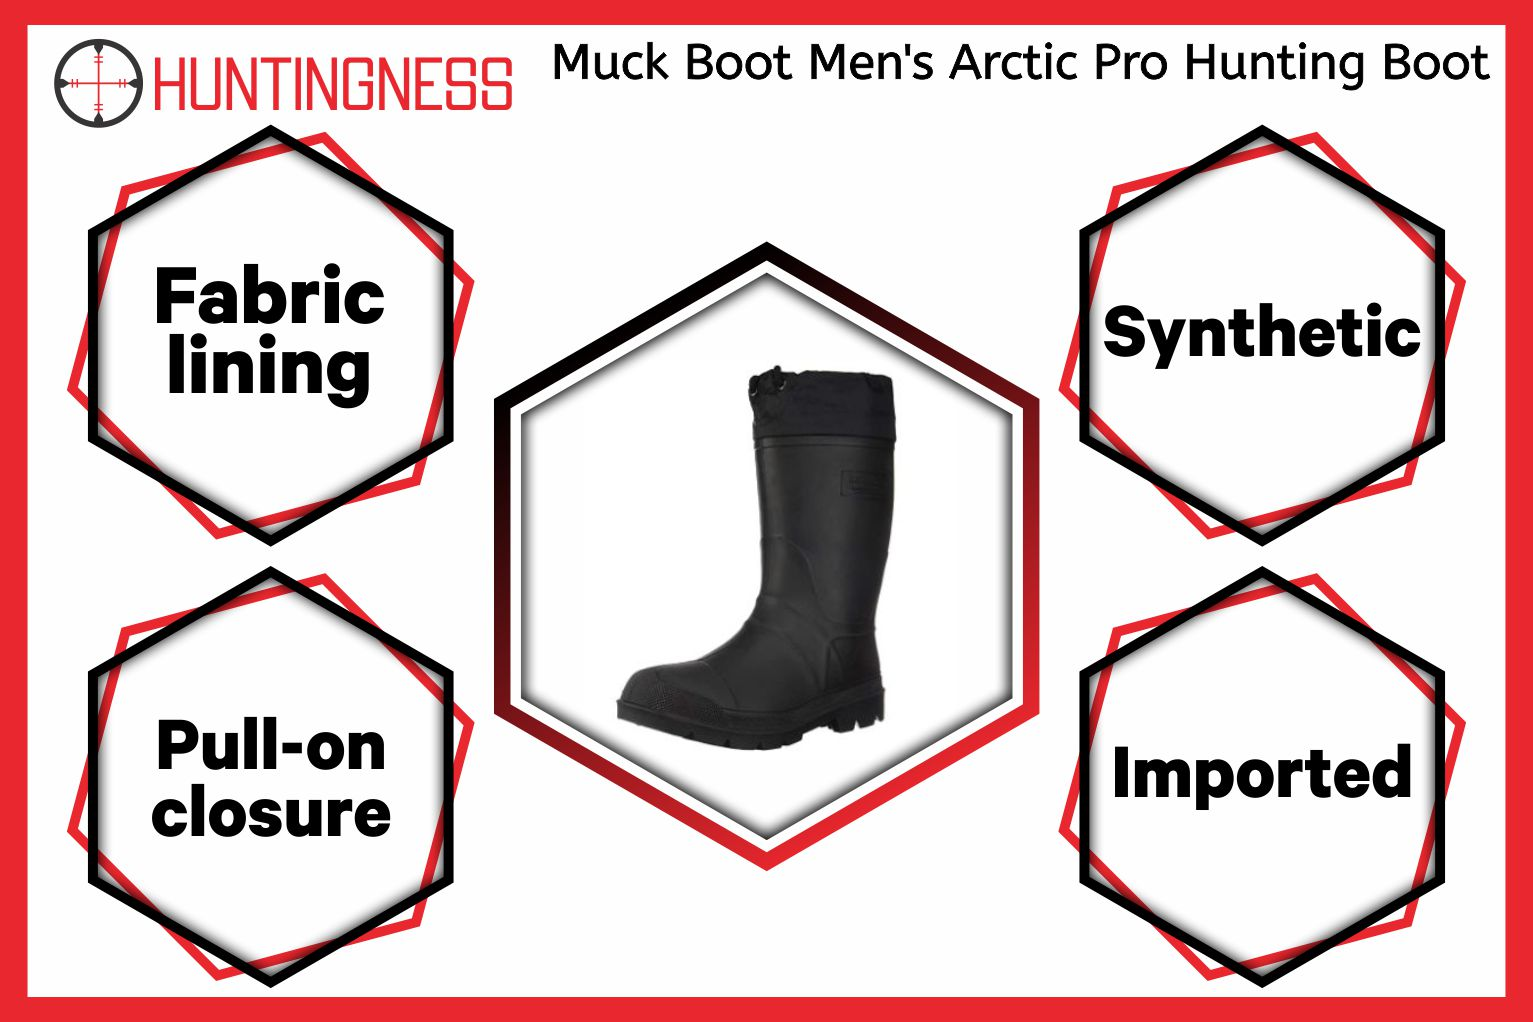 Muck Boot Men's Arctic Pro Hunting Boot infographic